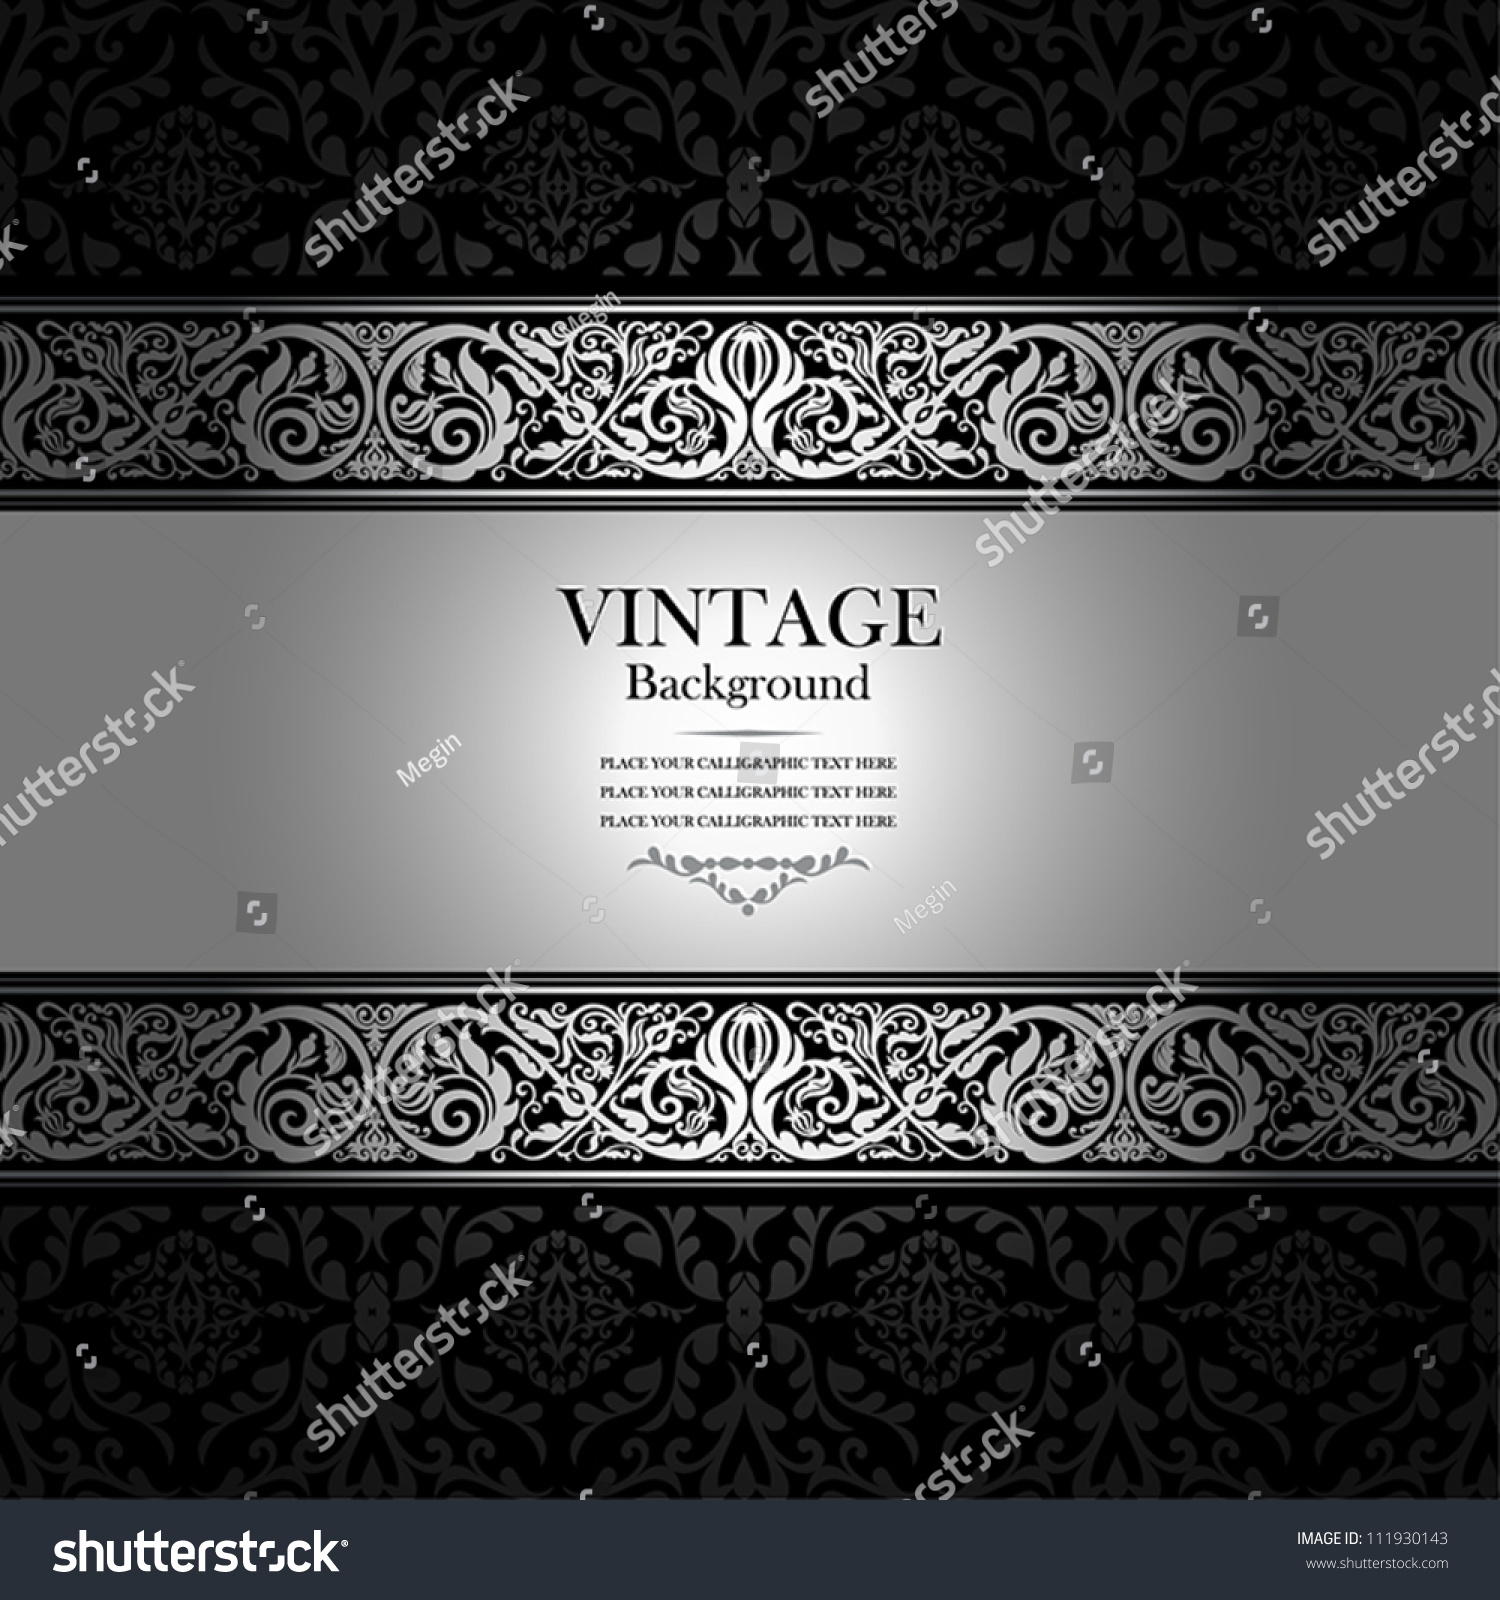 vintage background antique victorian silver or nt stock vector vintage background antique victorian silver or nt black and white frame beautiful old